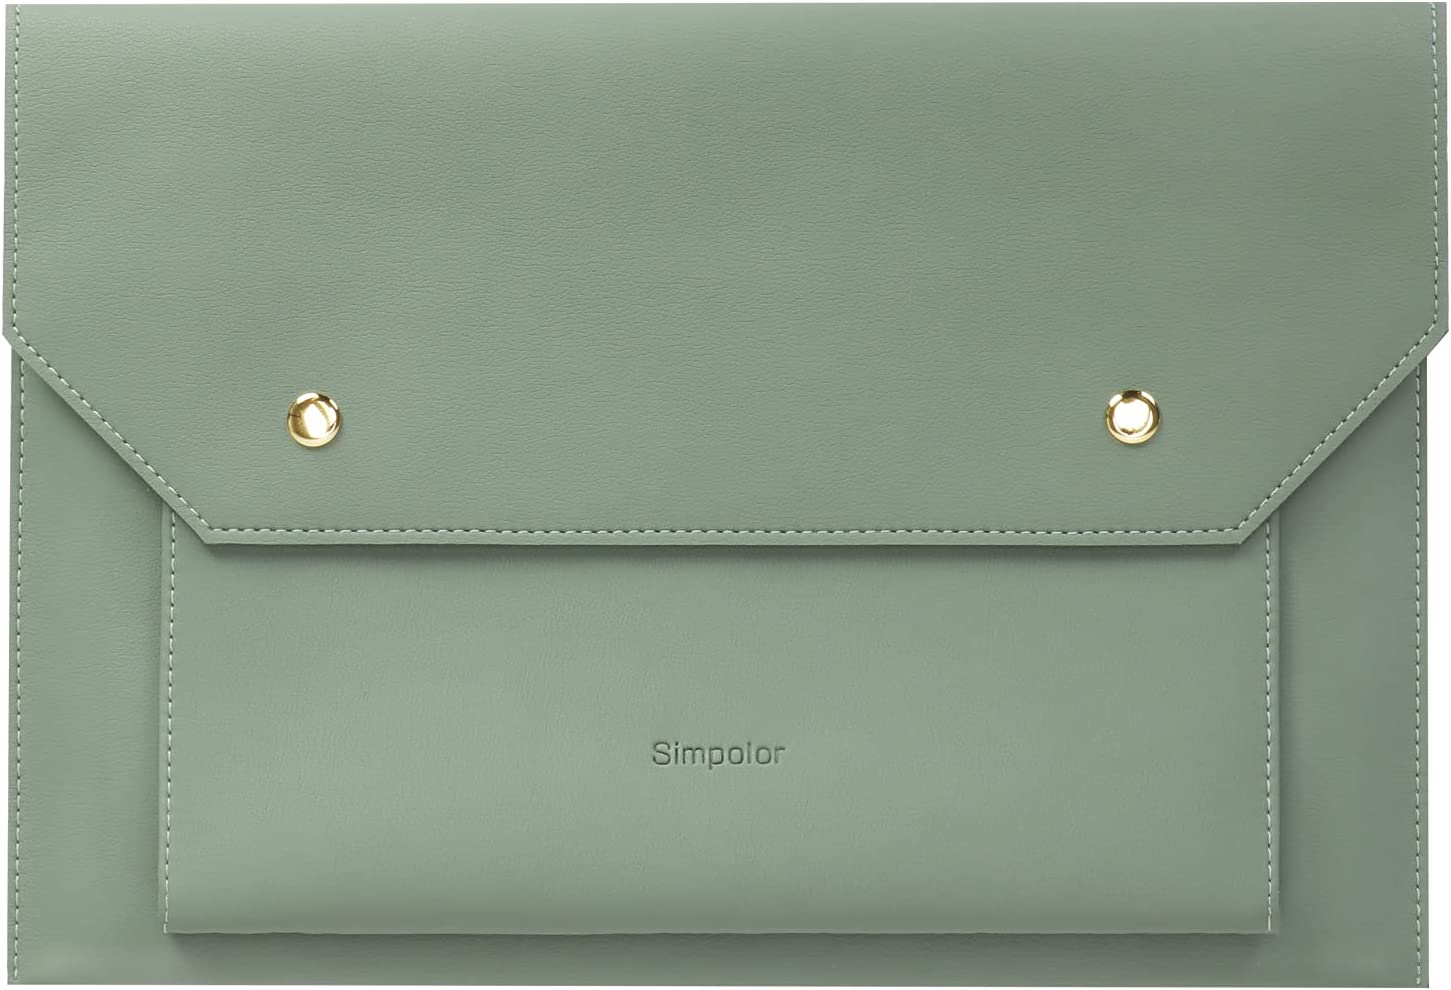 Simpolor Laptop Sleeve, Premium Leather Skinny Document Bag for